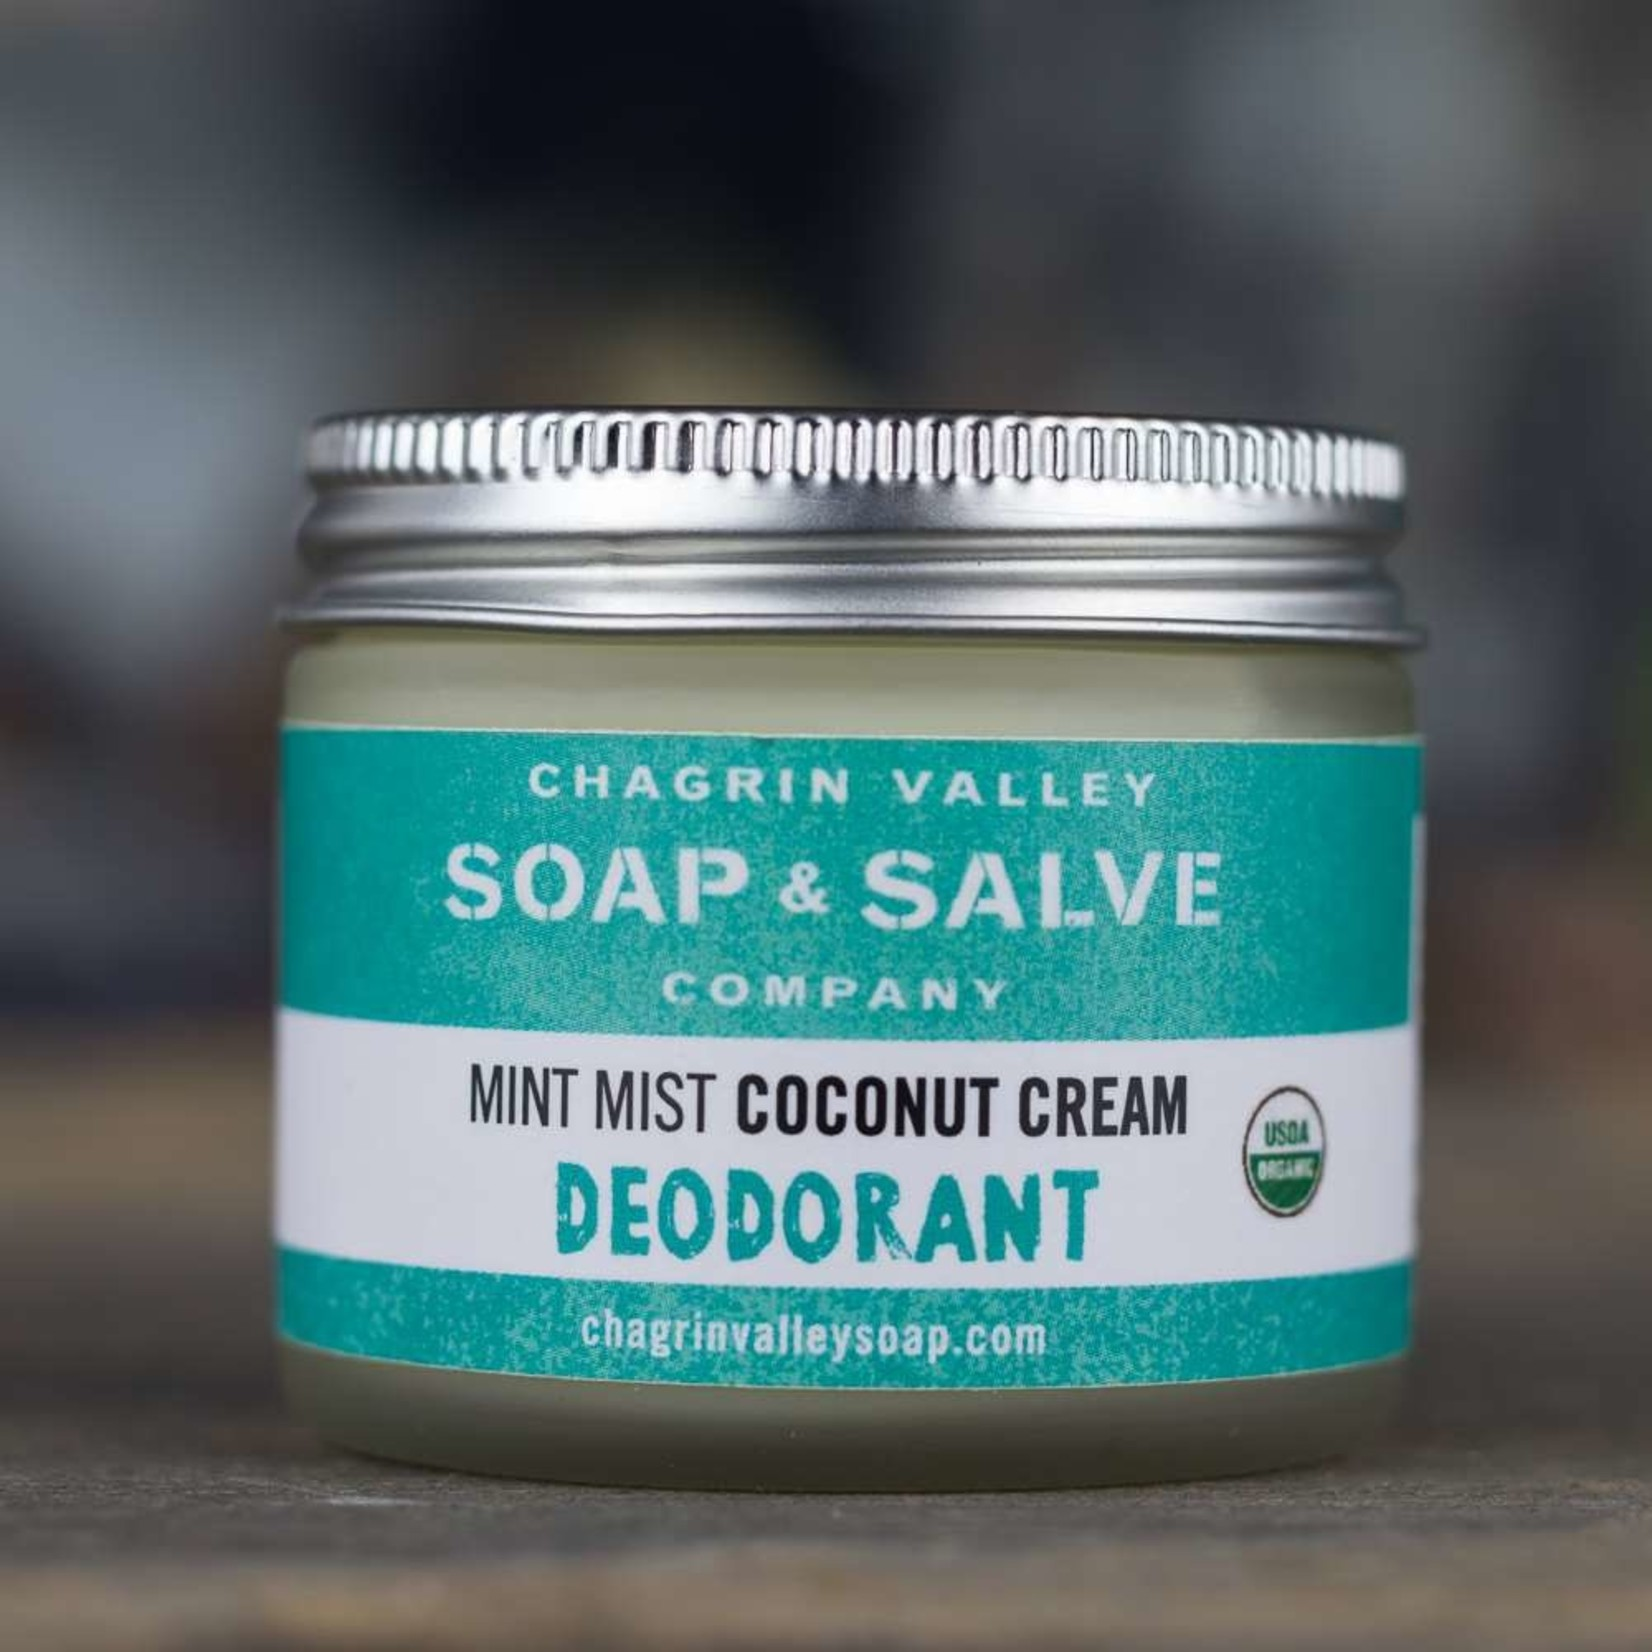 Chagrin Valley Soap and Salve Mint Mist Coconut Cream Deodorant